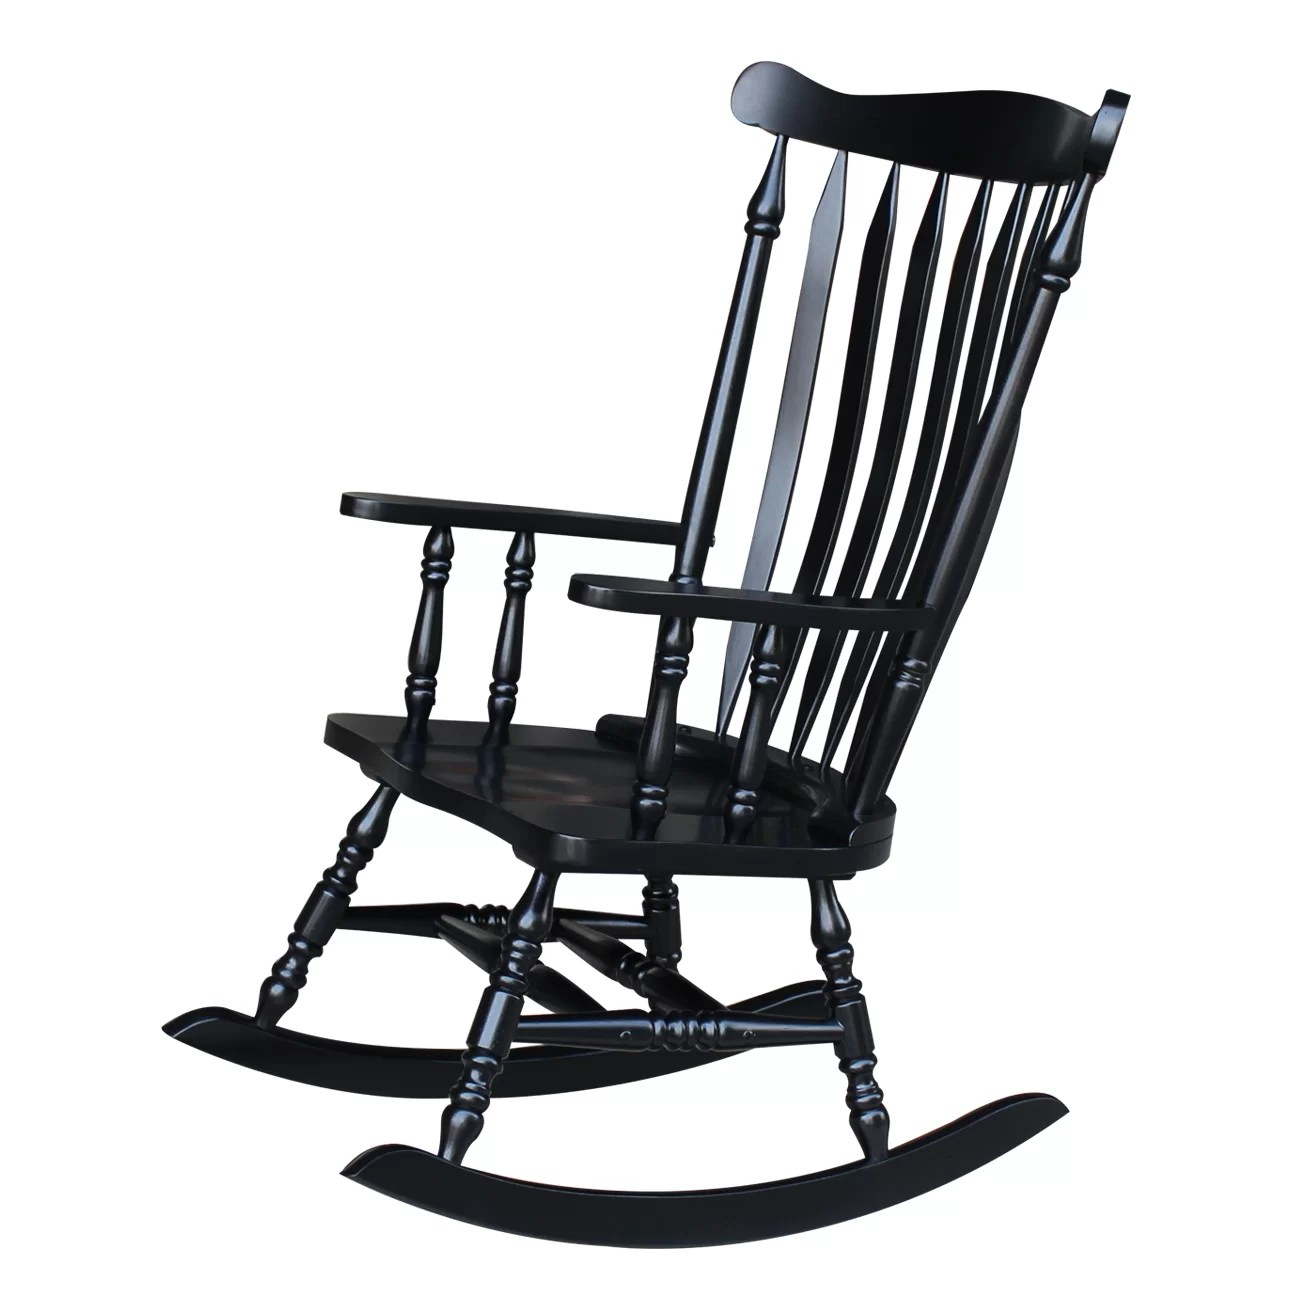 Rockin Chairs International Concepts Rocking Chair And Reviews Wayfair